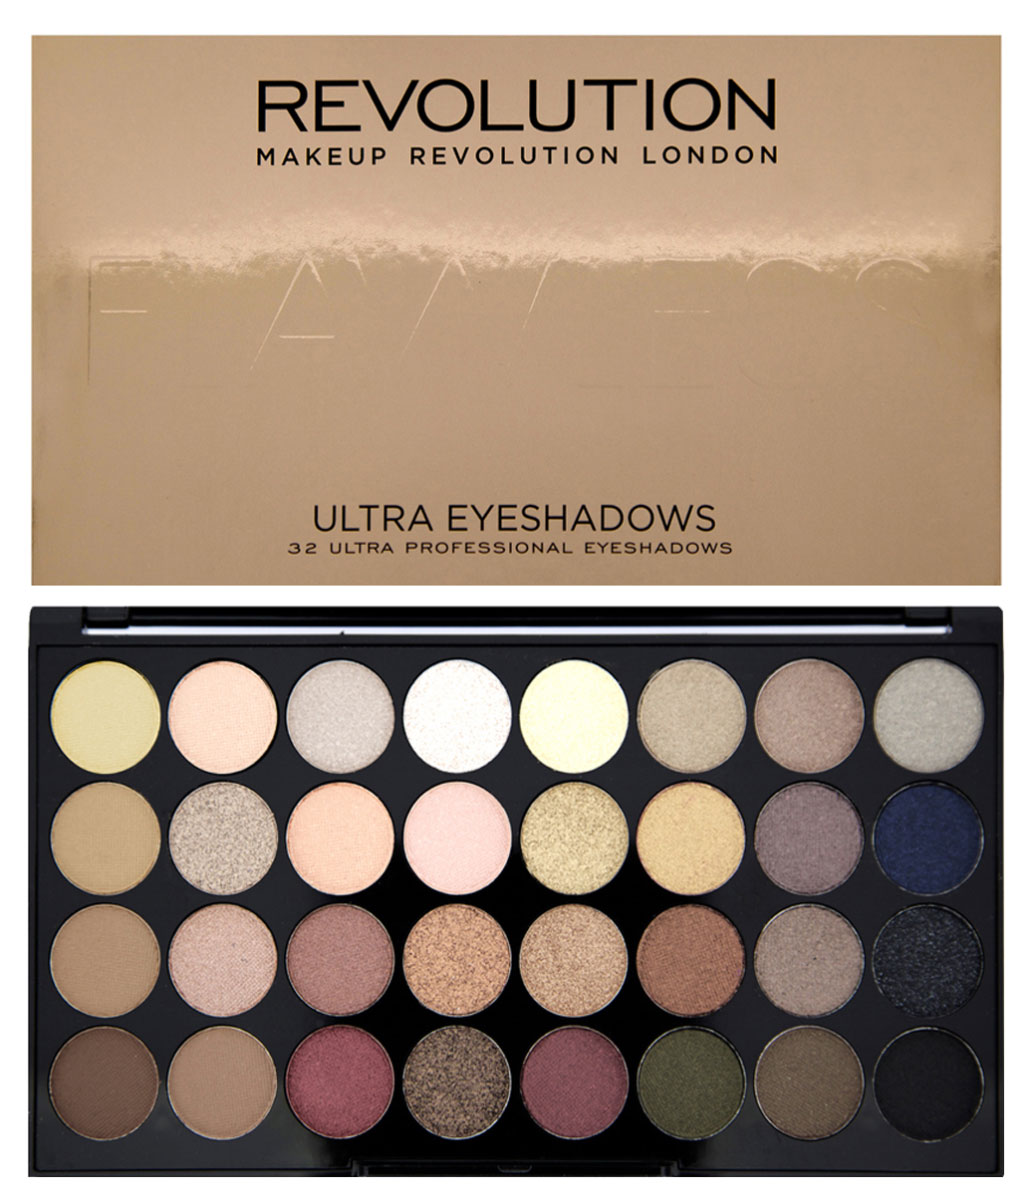 Makeup Revolution Набор из 32 теней 32 Eyeshadow Palette, Flawless, 16 гр makeup revolution salvation palette welcome to the pleasuredome hard day палетка теней